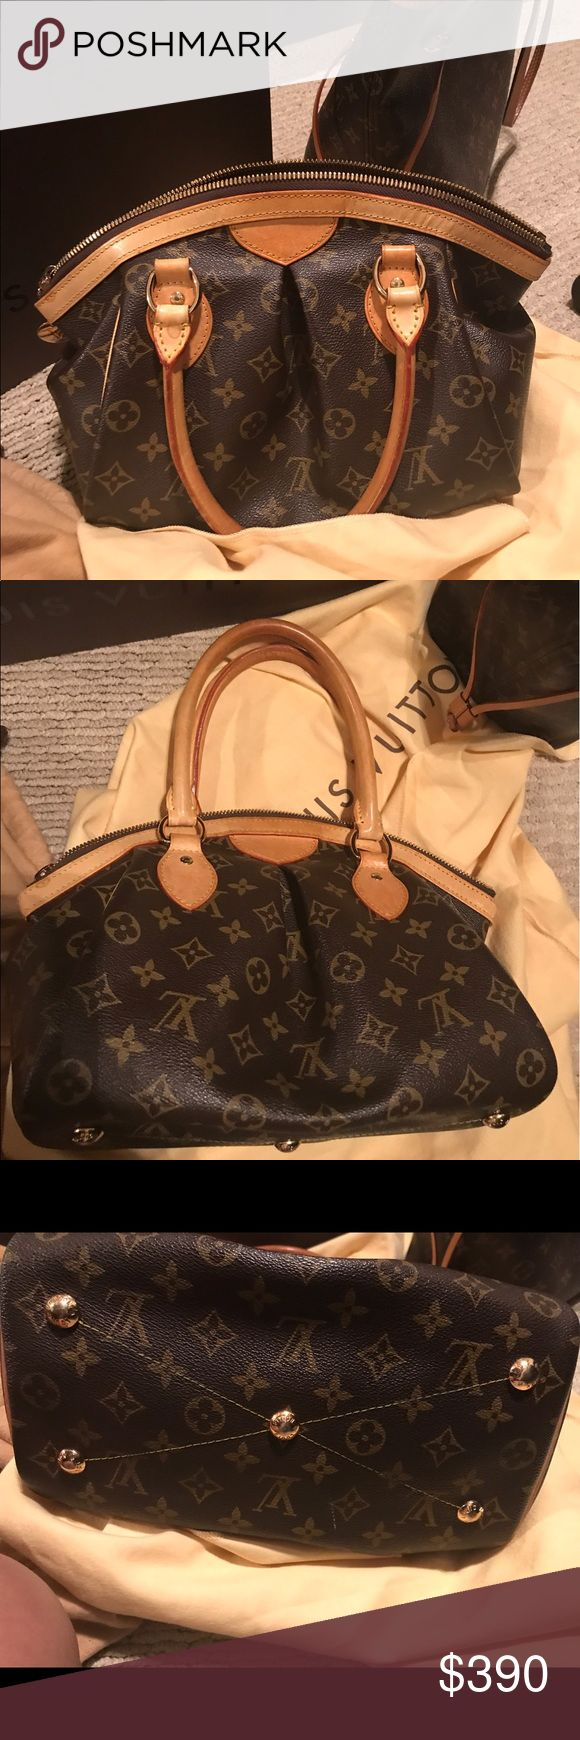 Louis Vuitton Tívoli PM Authentic this is one of my LVs I'm ready to part with. It's in great condition inside and out, piping in all corners is in tact. It has been used but well taken care of. Please use offer button, this is my first item I've listed on this app, I am not in a hurry to sell. Please submit reasonable offers thanks. Louis Vuitton Bags